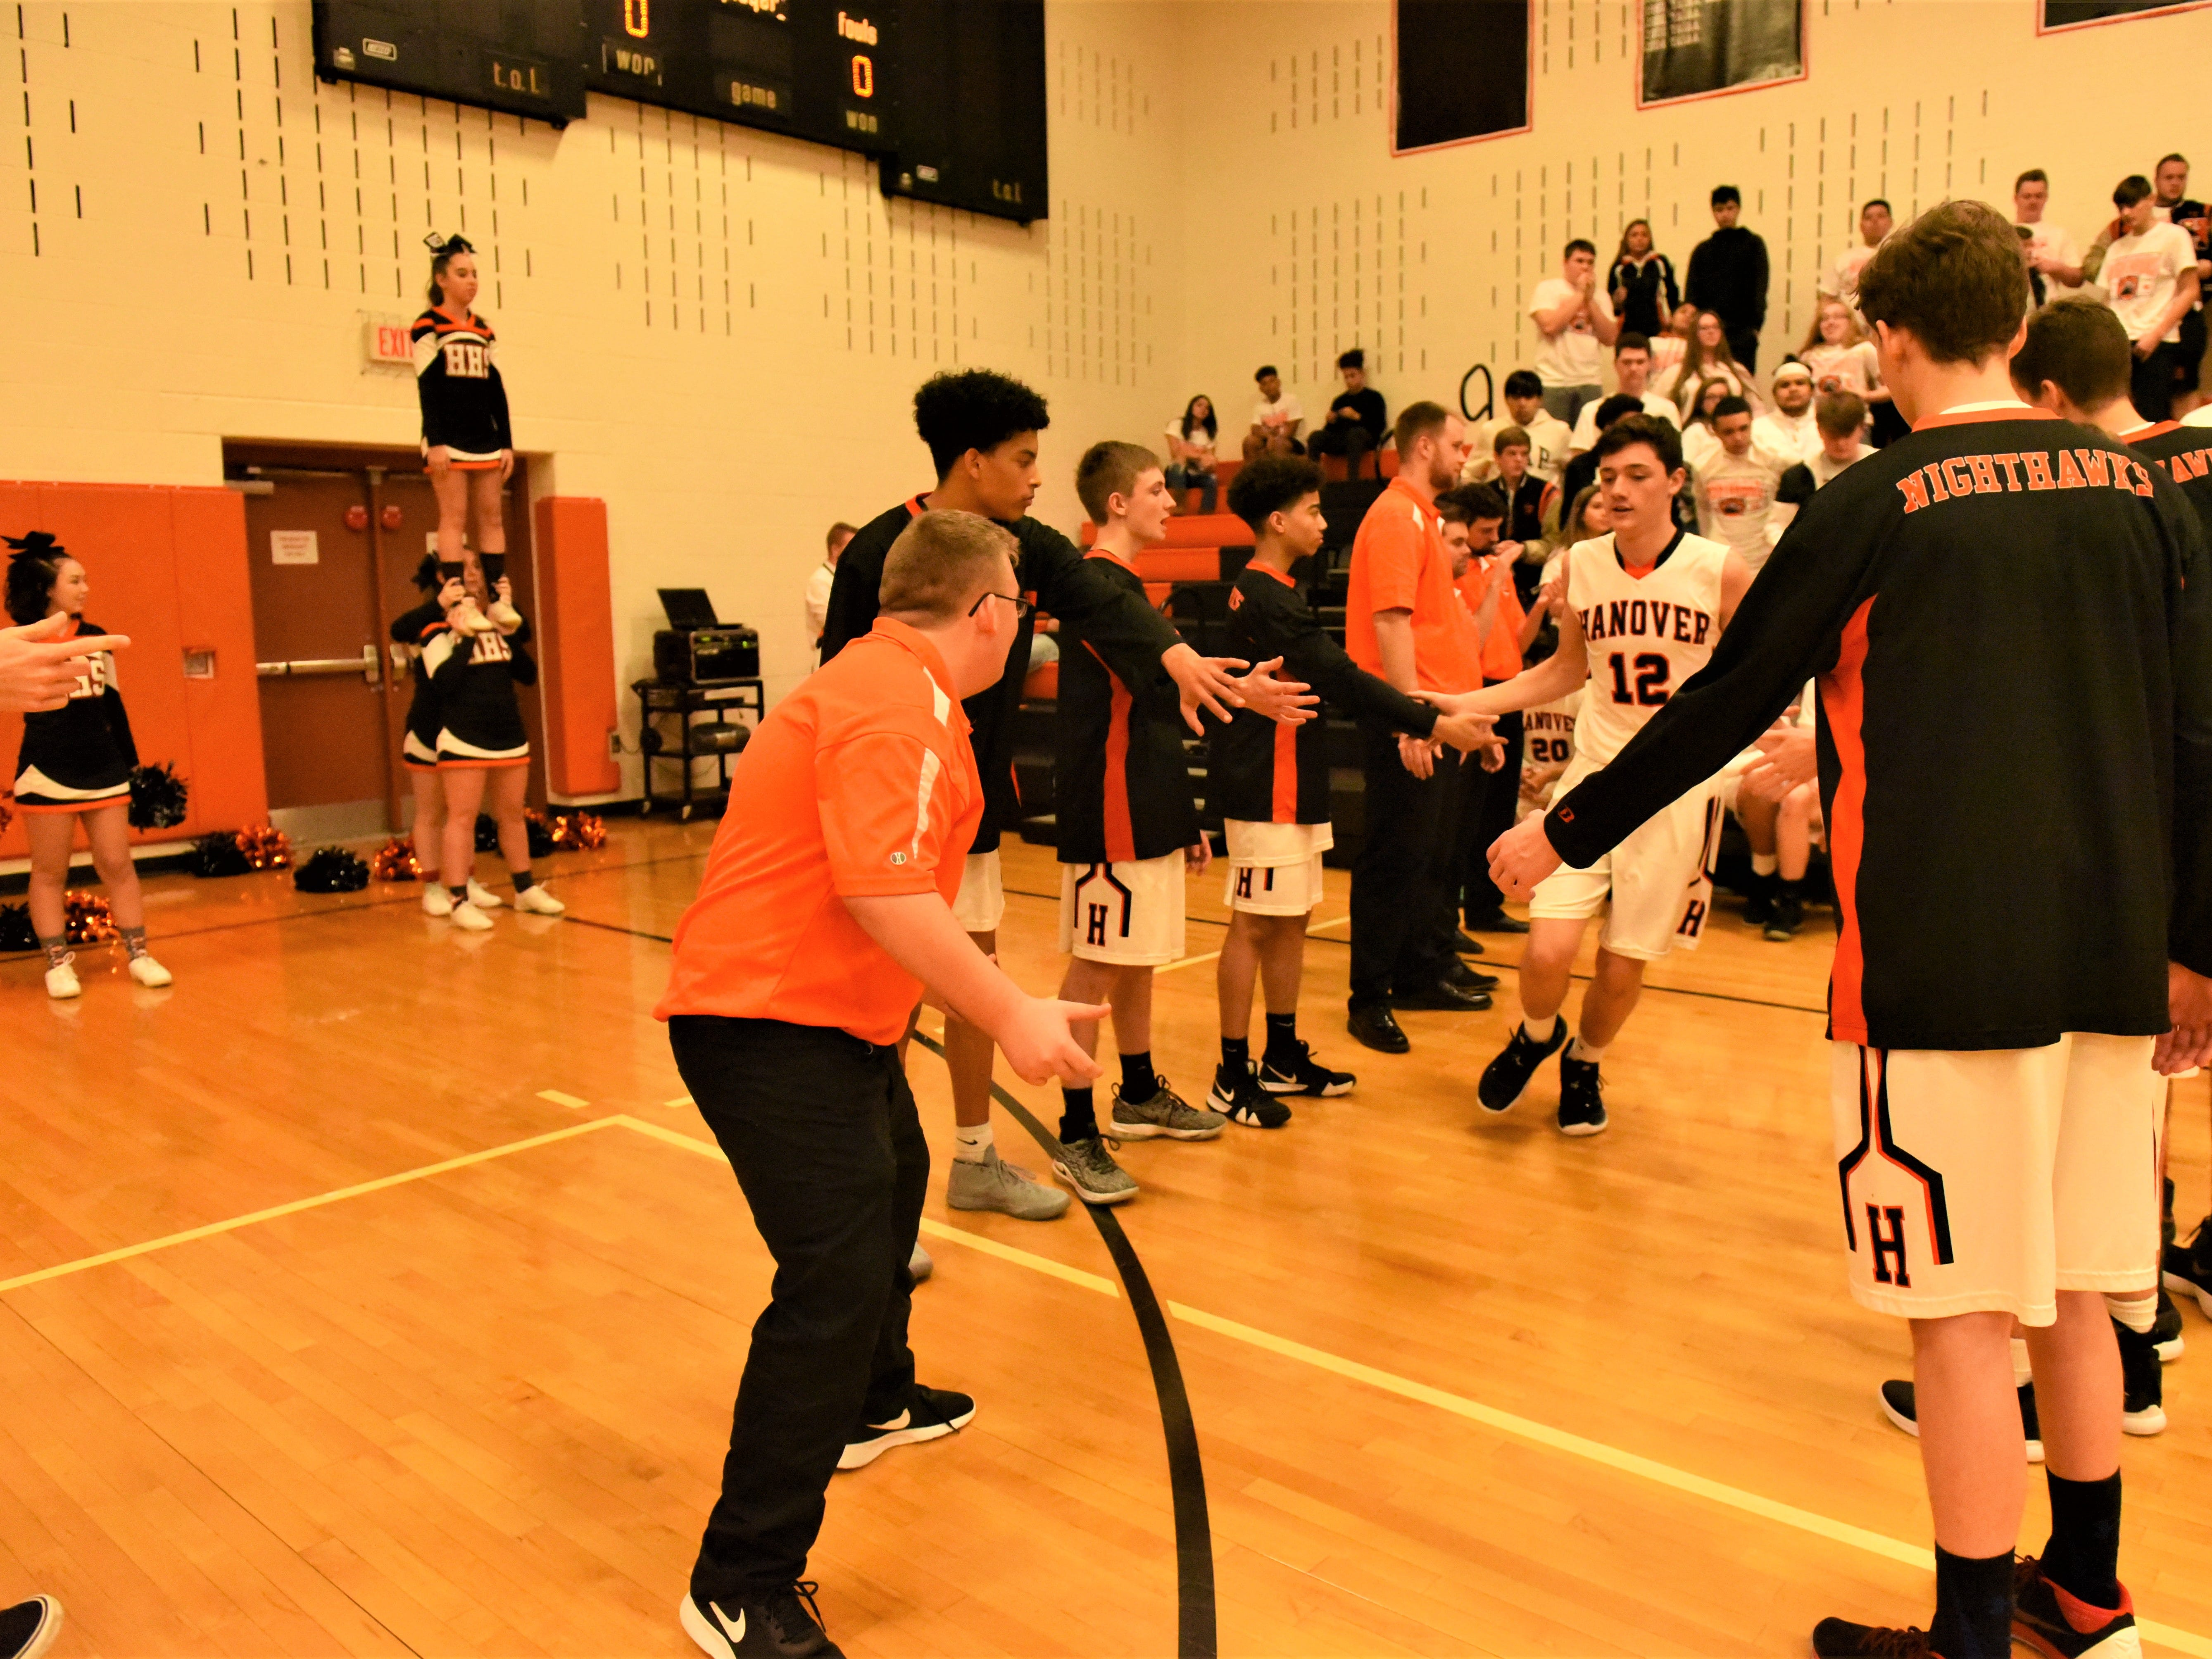 Kyle Garman is greeted by his teammates at the start of the game. Fairfield High School lost at Hanover High School on Dec. 21, 57 to 43.